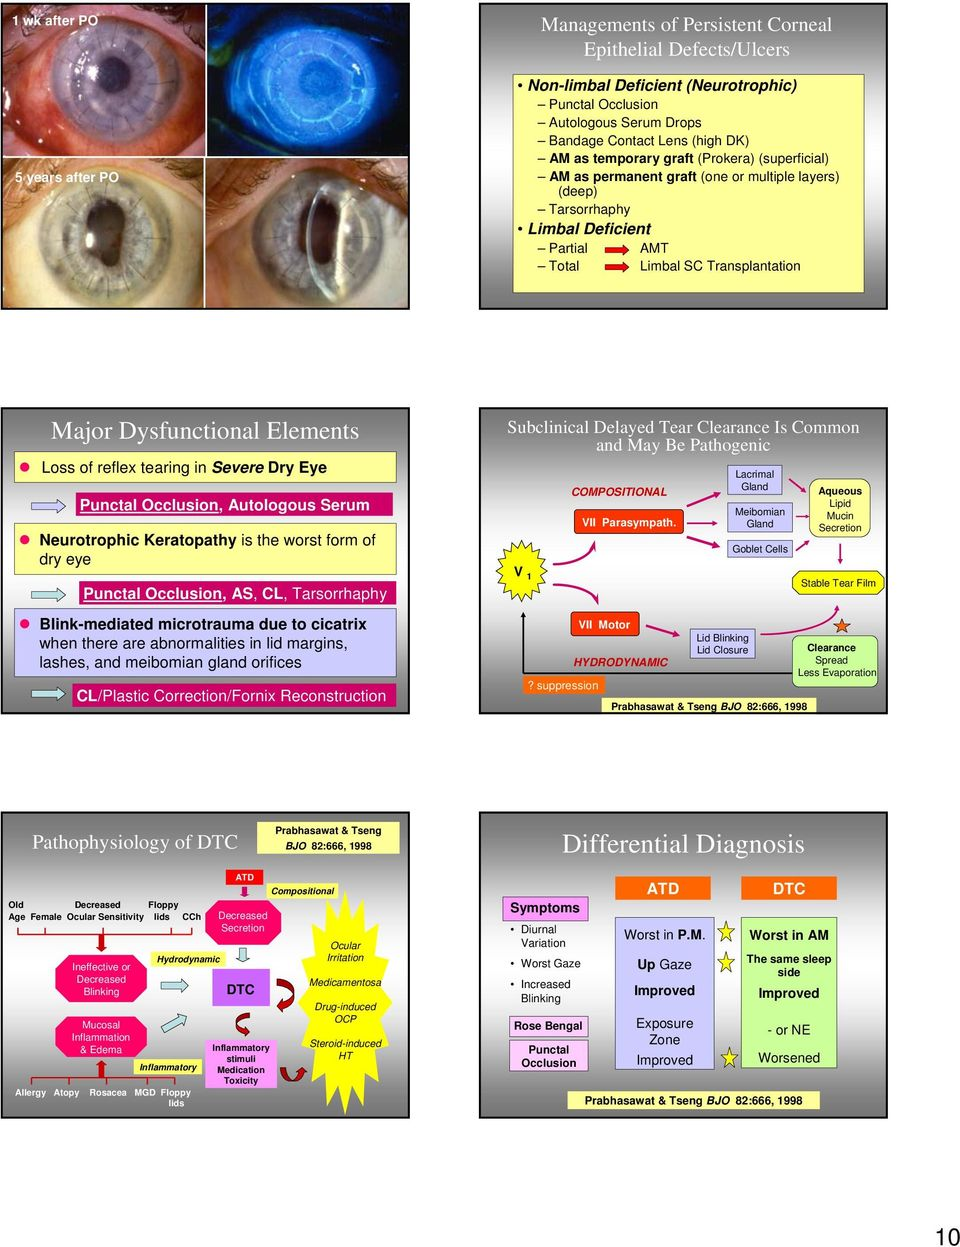 Elements Loss of reflex tearing in Severe Dry Eye Punctal Occlusion, Autologous Serum Neurotrophic Keratopathy is the worst form of dry eye Punctal Occlusion, AS, CL, Tarsorrhaphy Blink-mediated